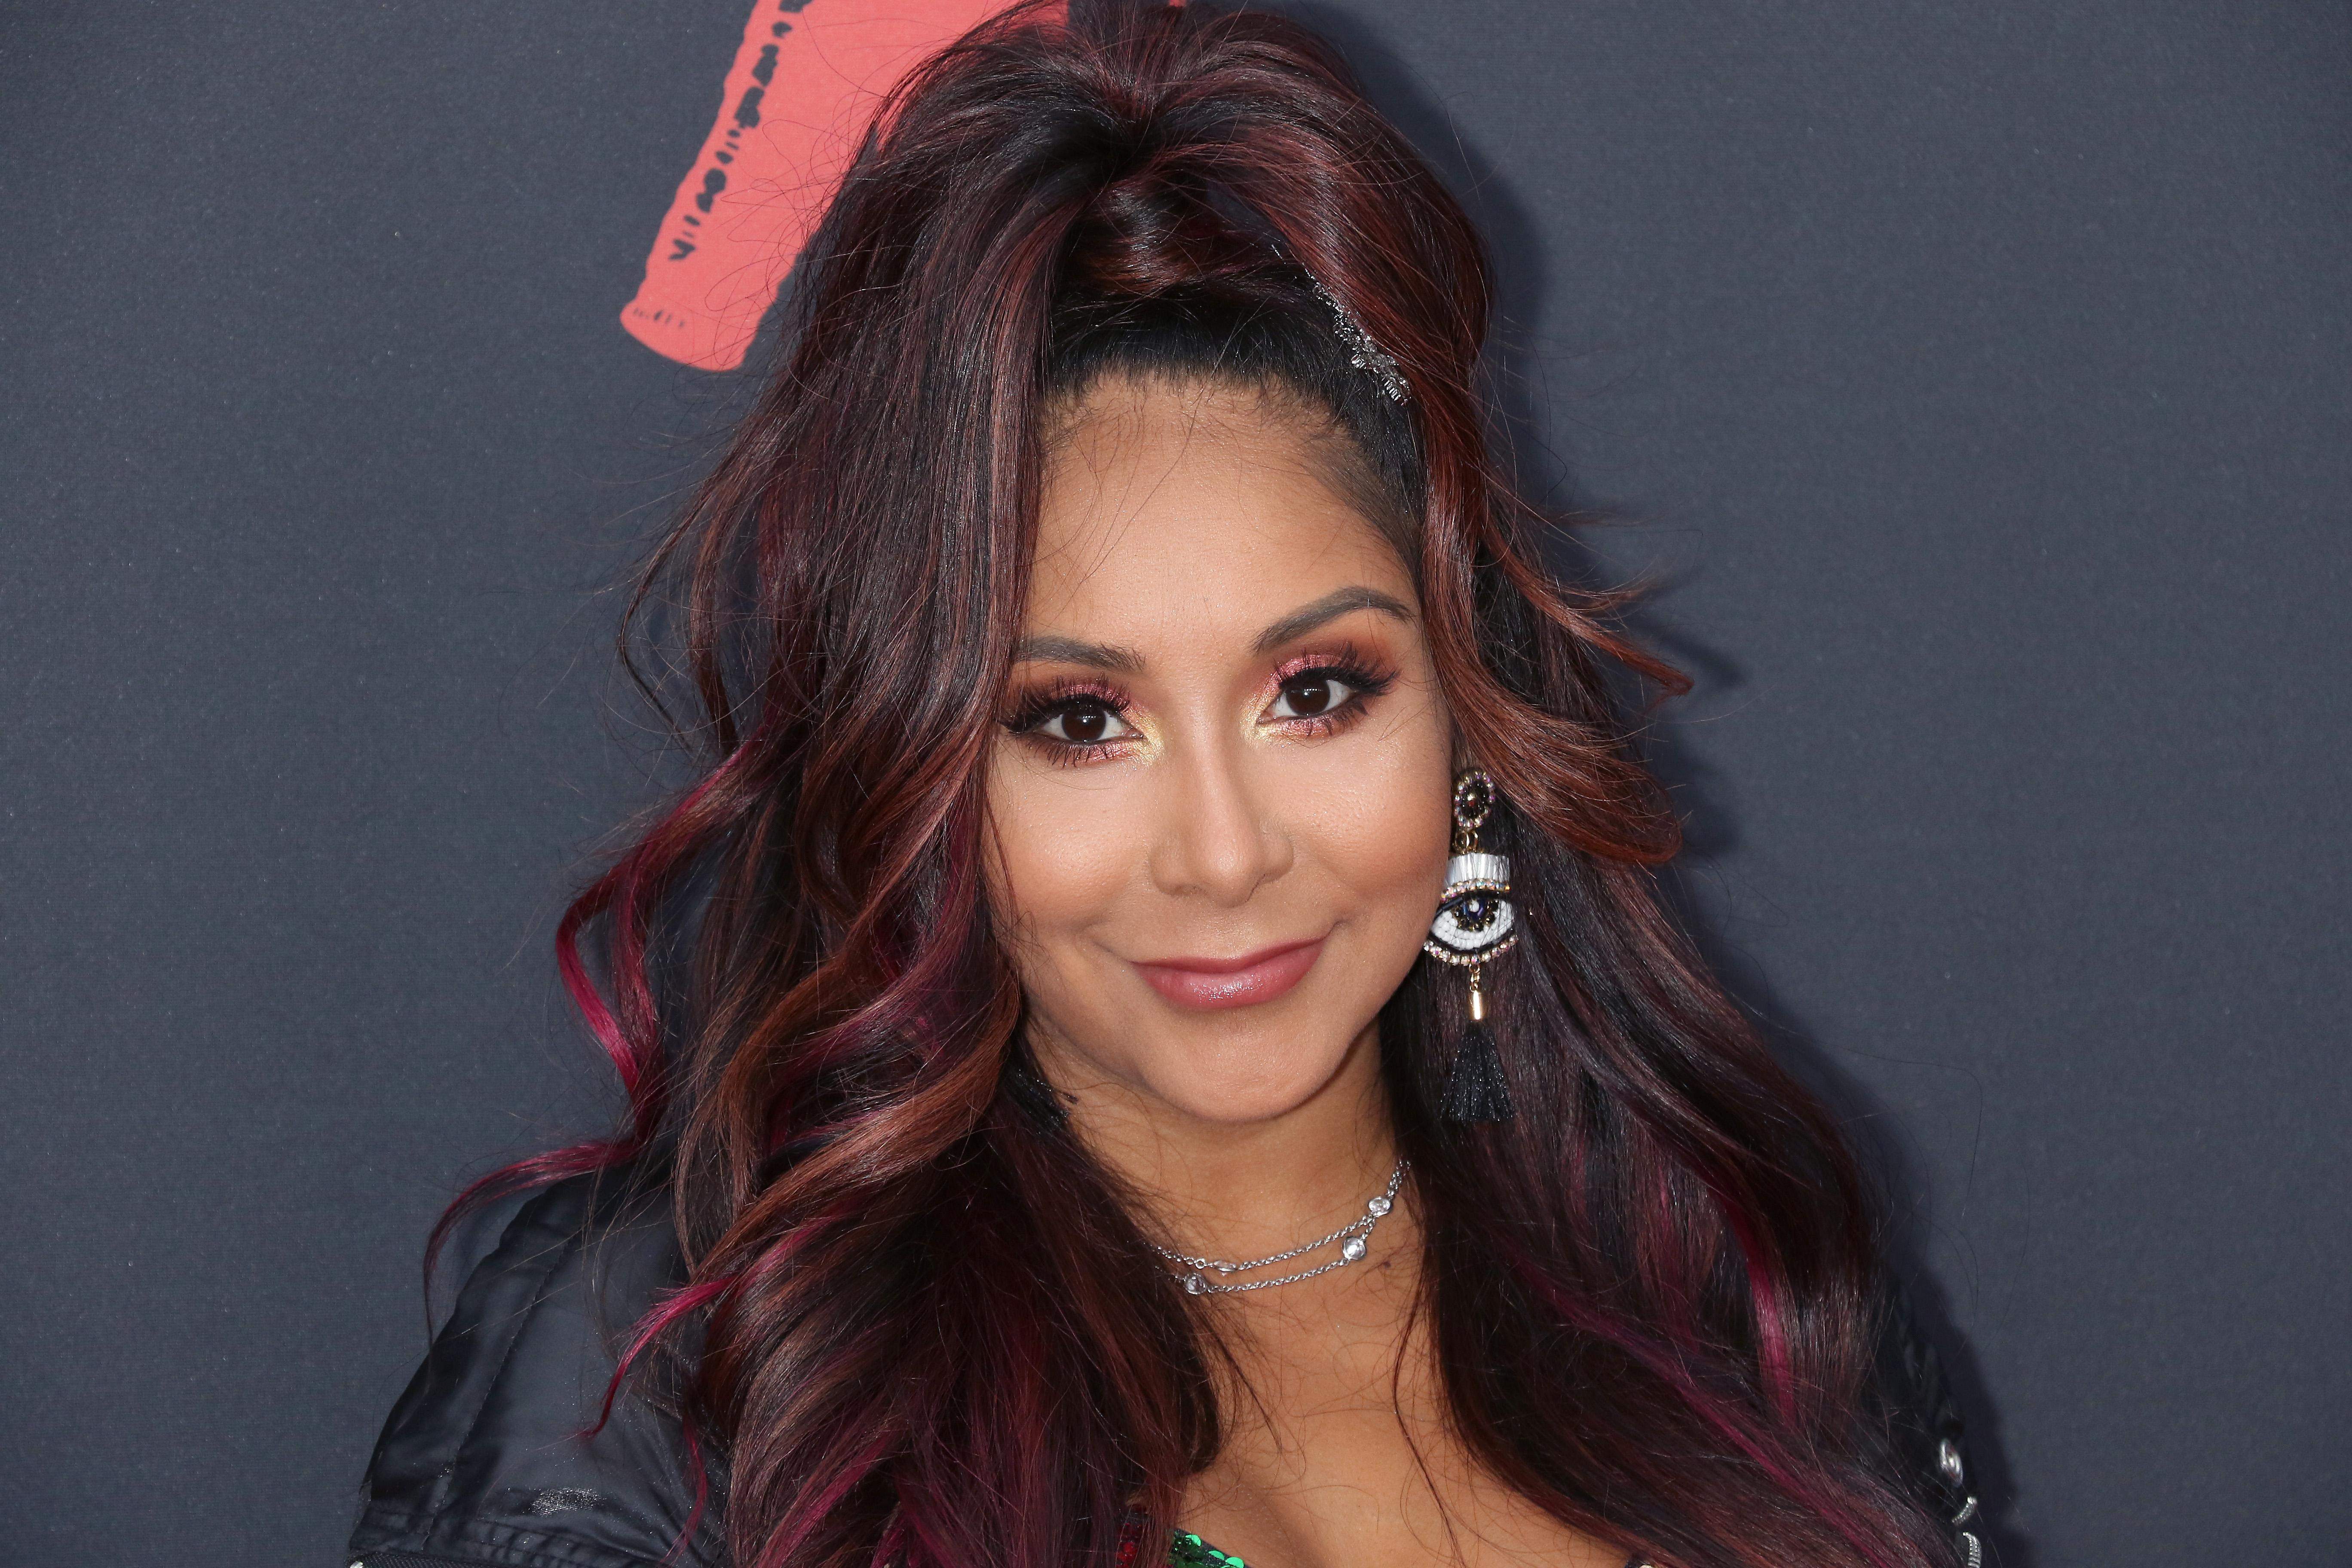 Snooki says drama, death threats are behind her 'retiring' from 'Jersey Shore'